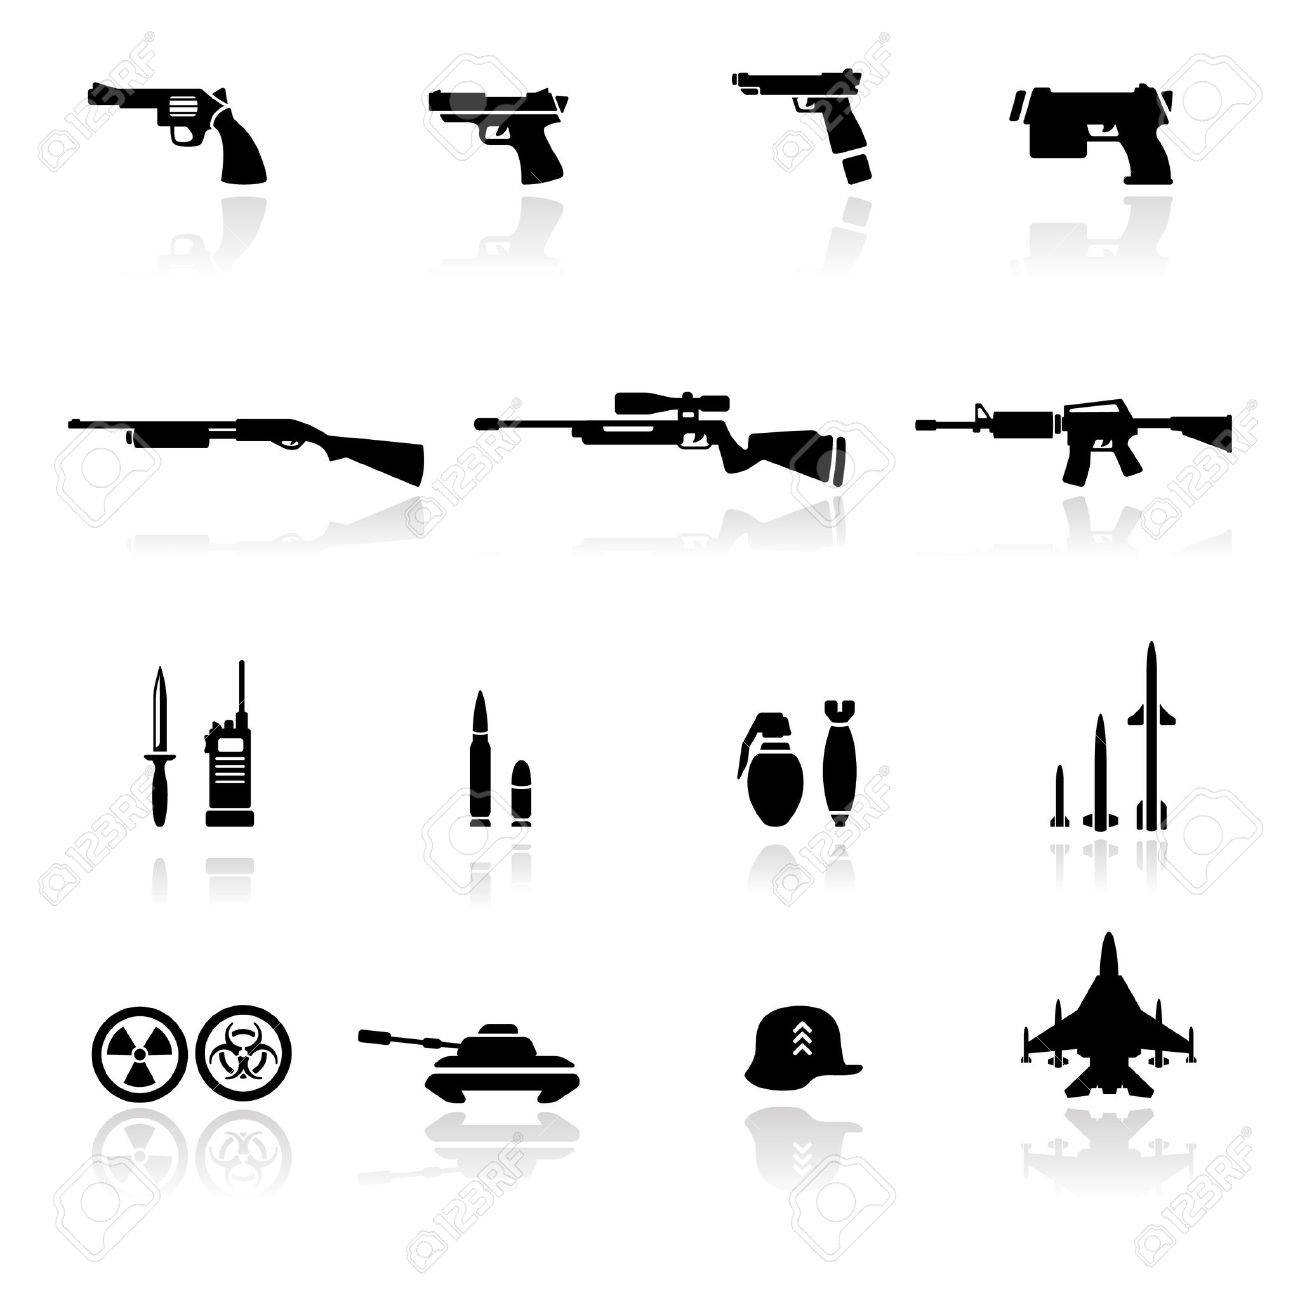 Icon set Weapons Stock Vector - 9811376